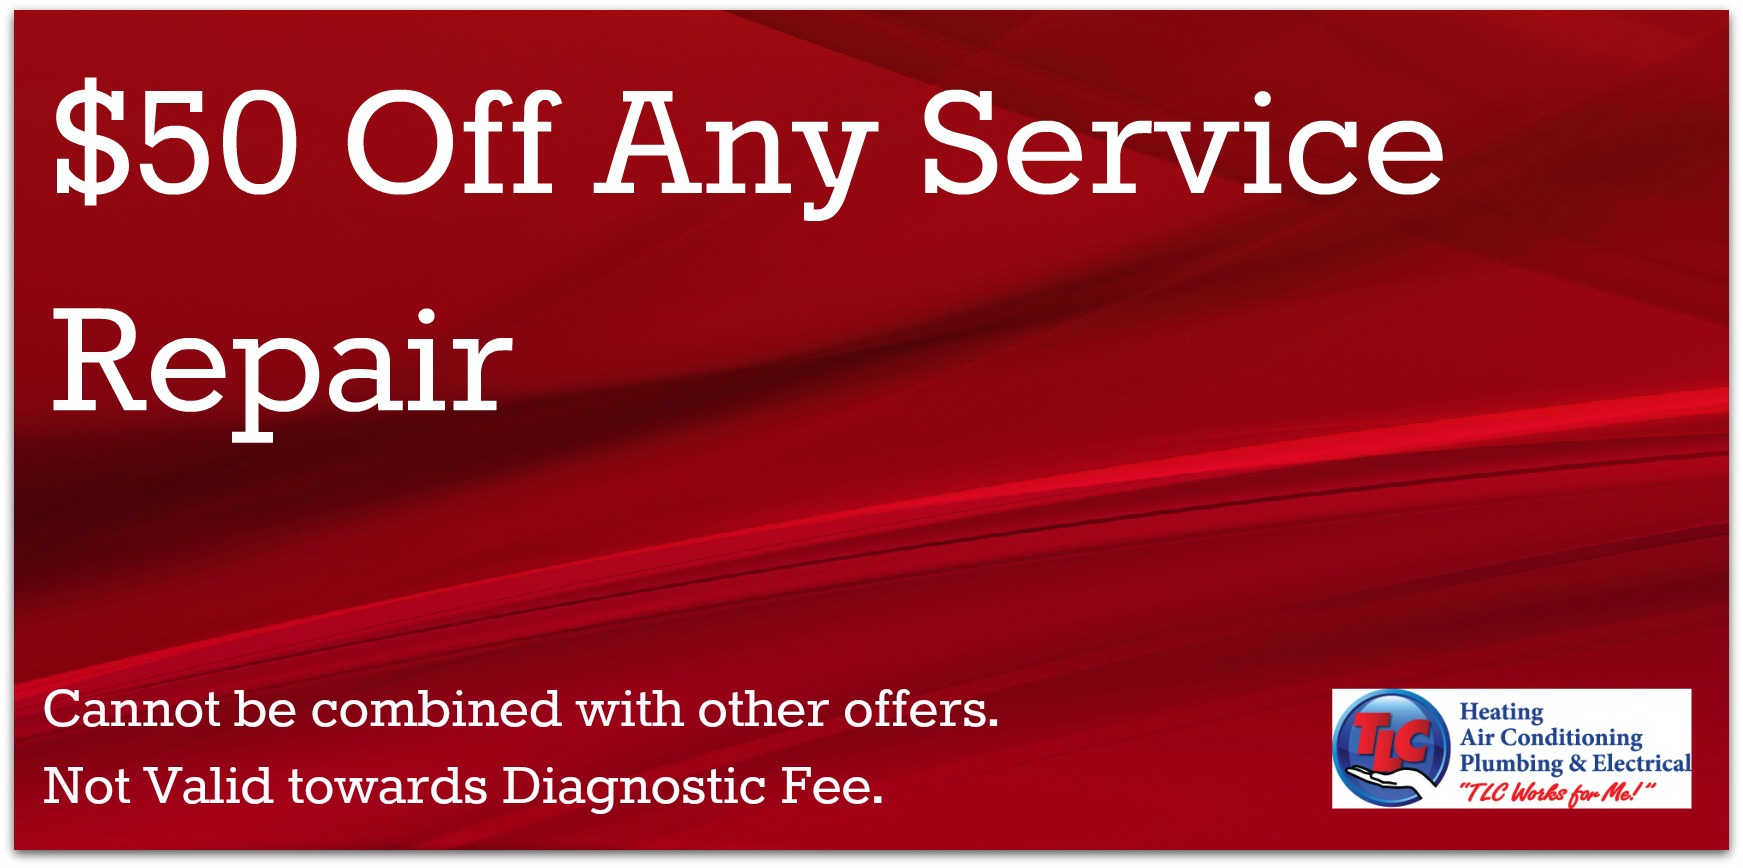 $50 Off Any Service Repair